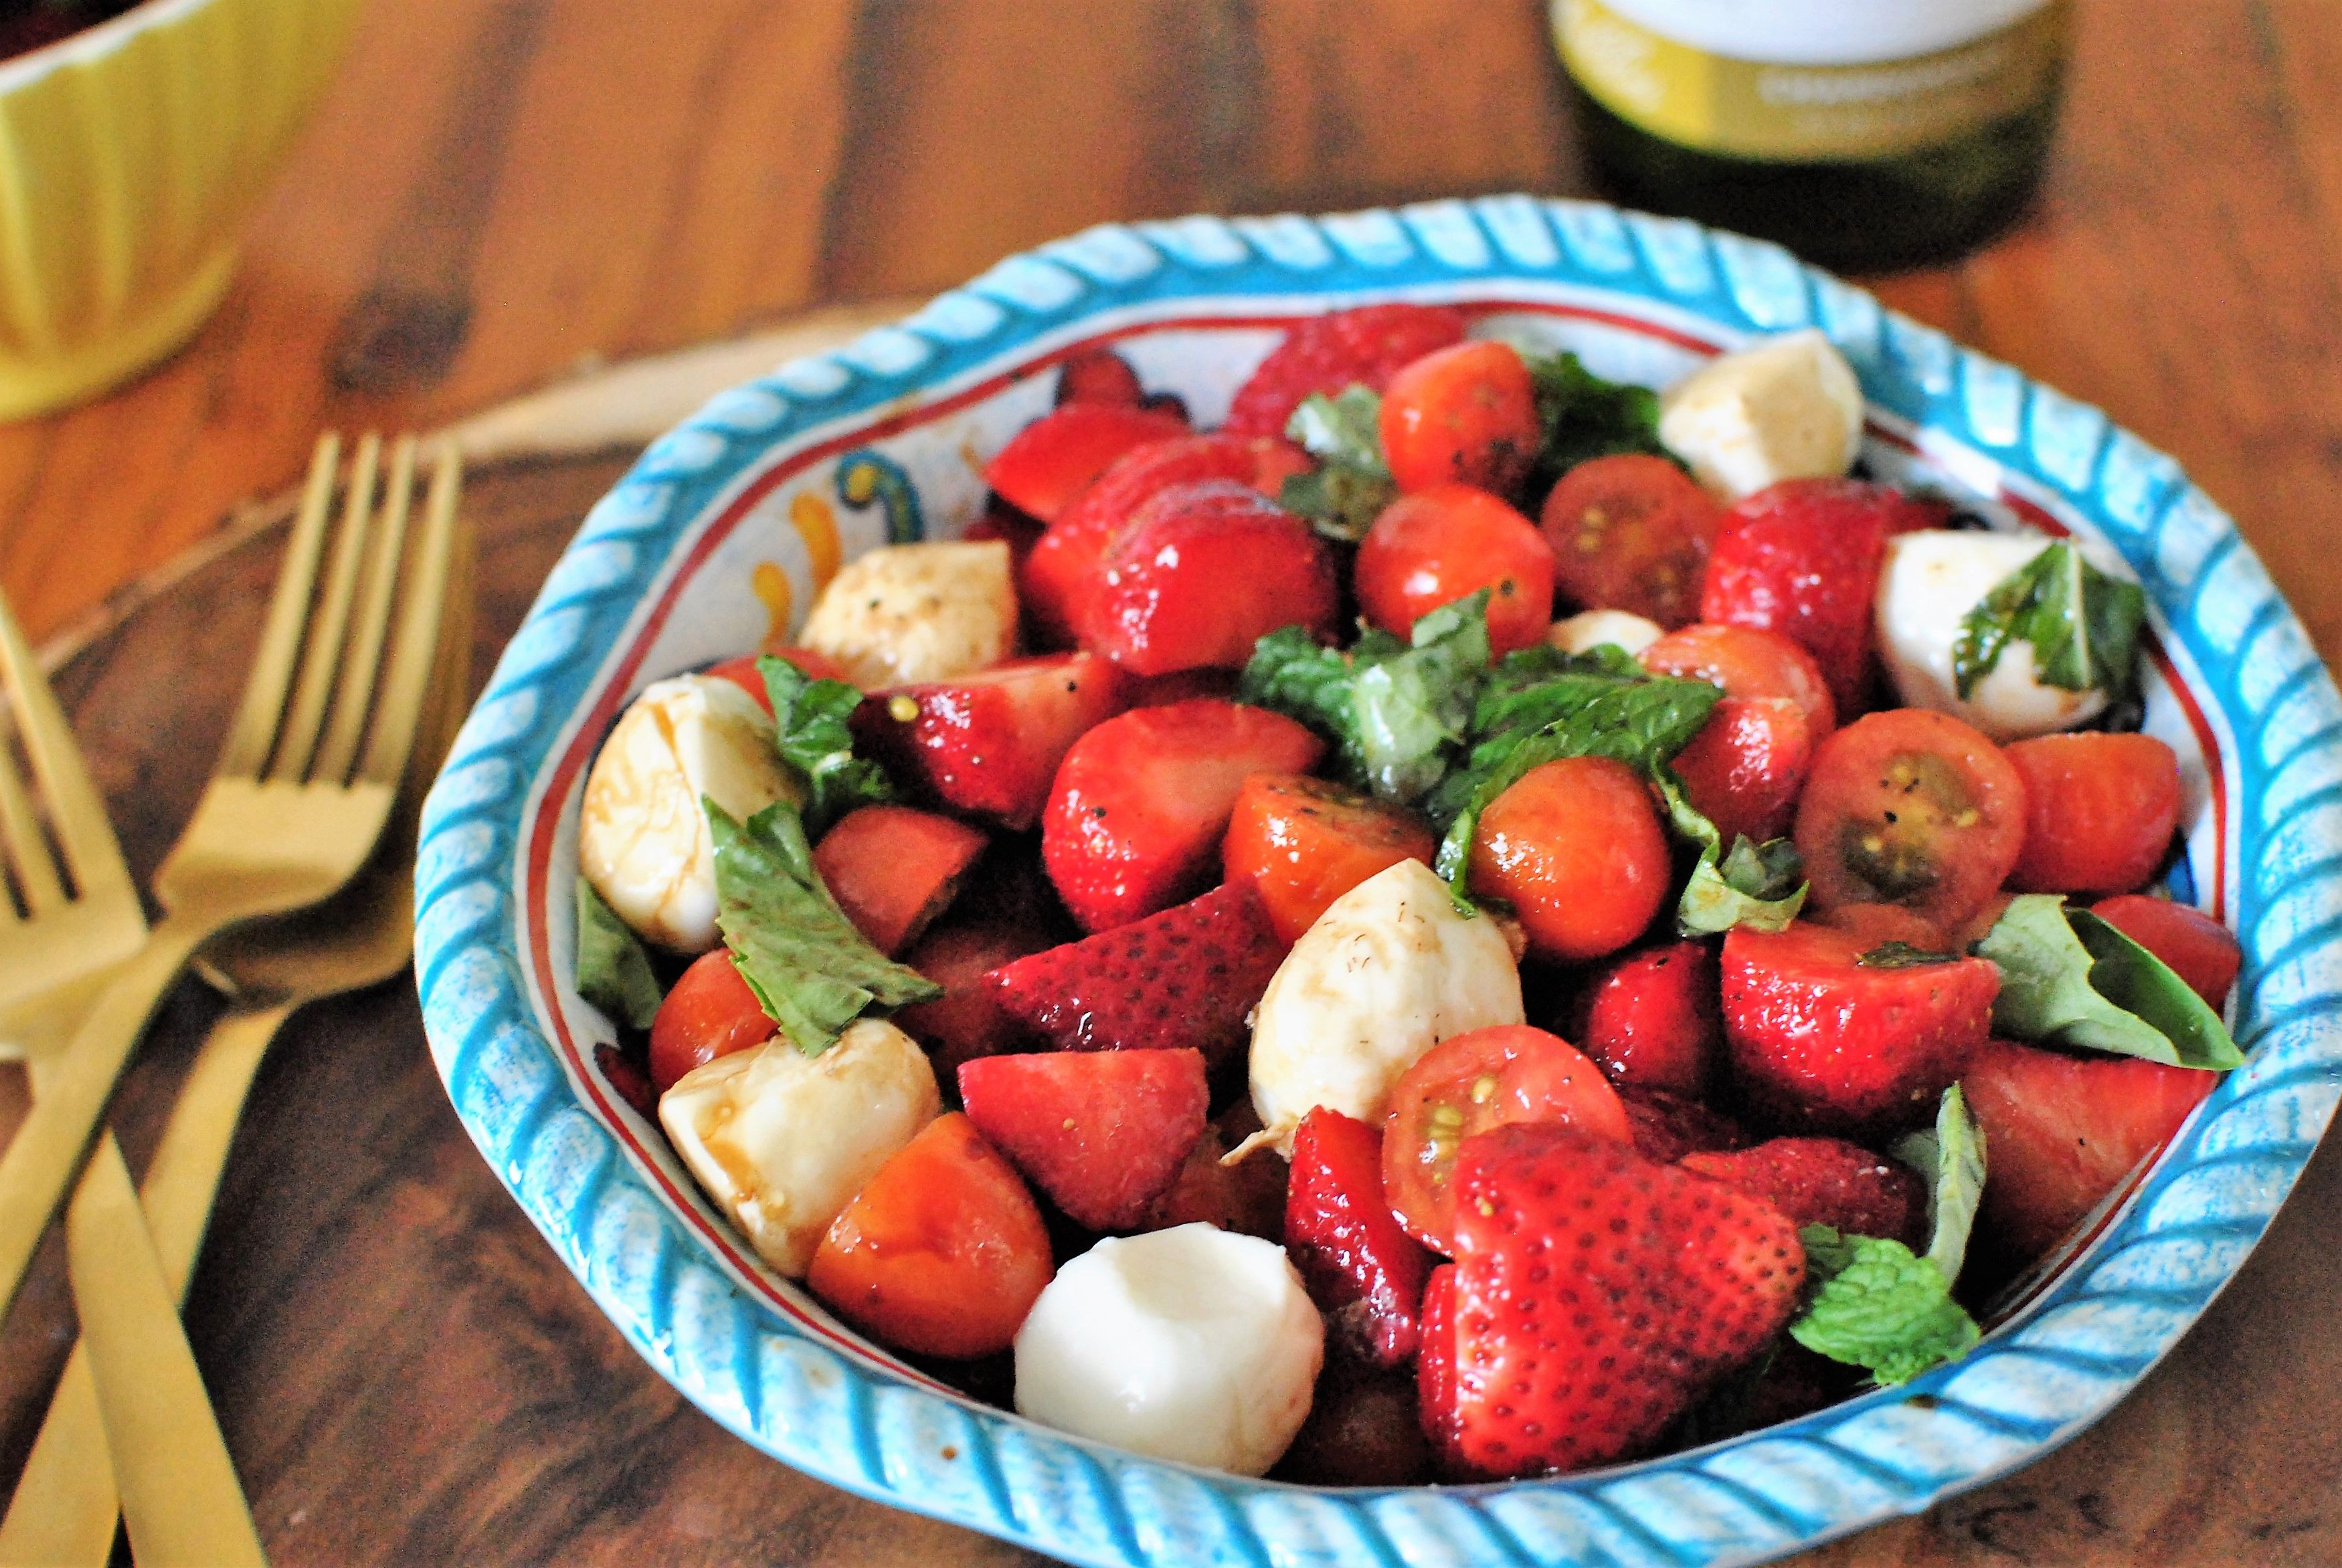 Strawberry Caprese Salad with Balsamic and Mint